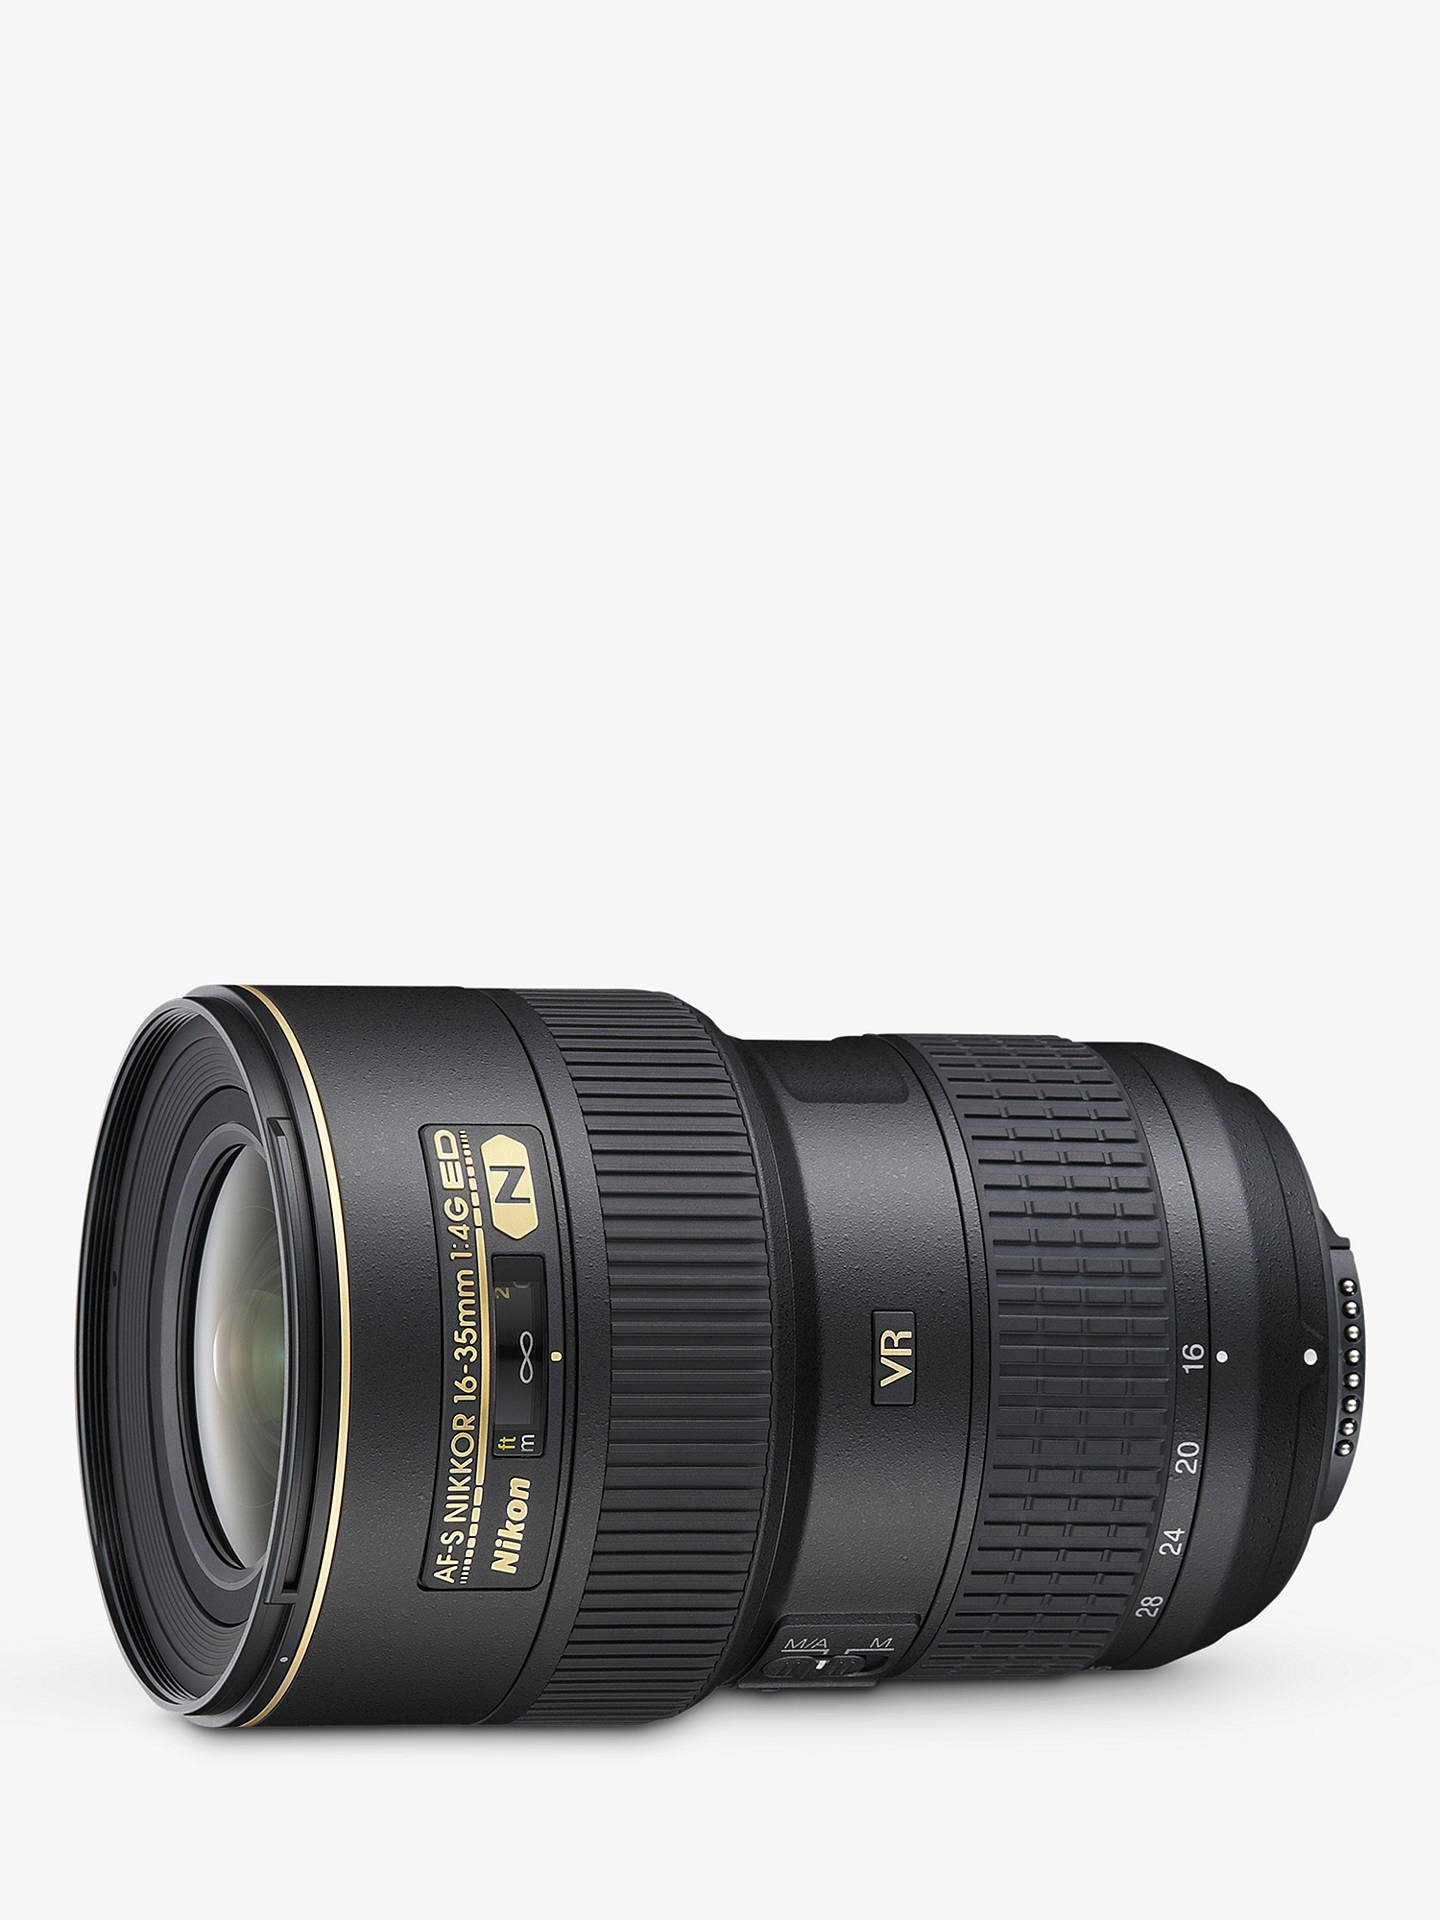 BuyNikon AF-S 16-35mm f/4G ED VR Zoom Lens for use with Nikon FX-format SLRs Online at johnlewis.com